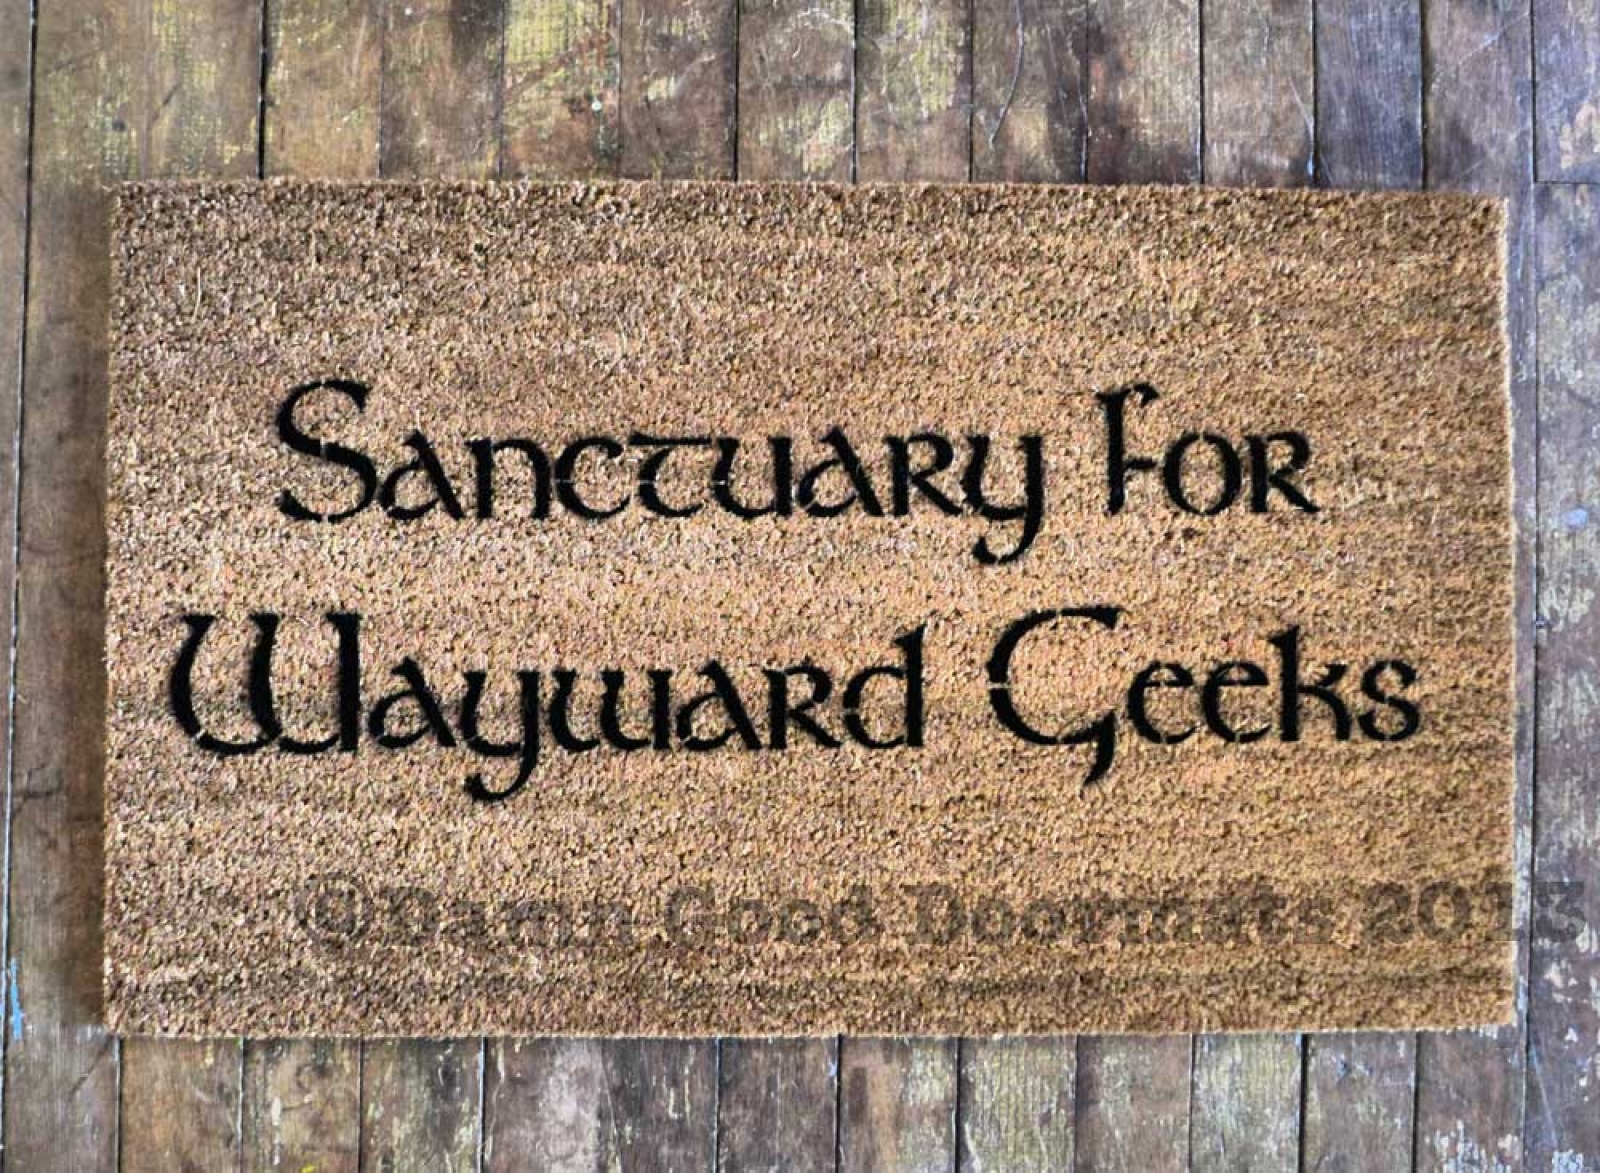 Binary welcome home doormat super nerd computer geek damn good doormats - Geeky doormats ...